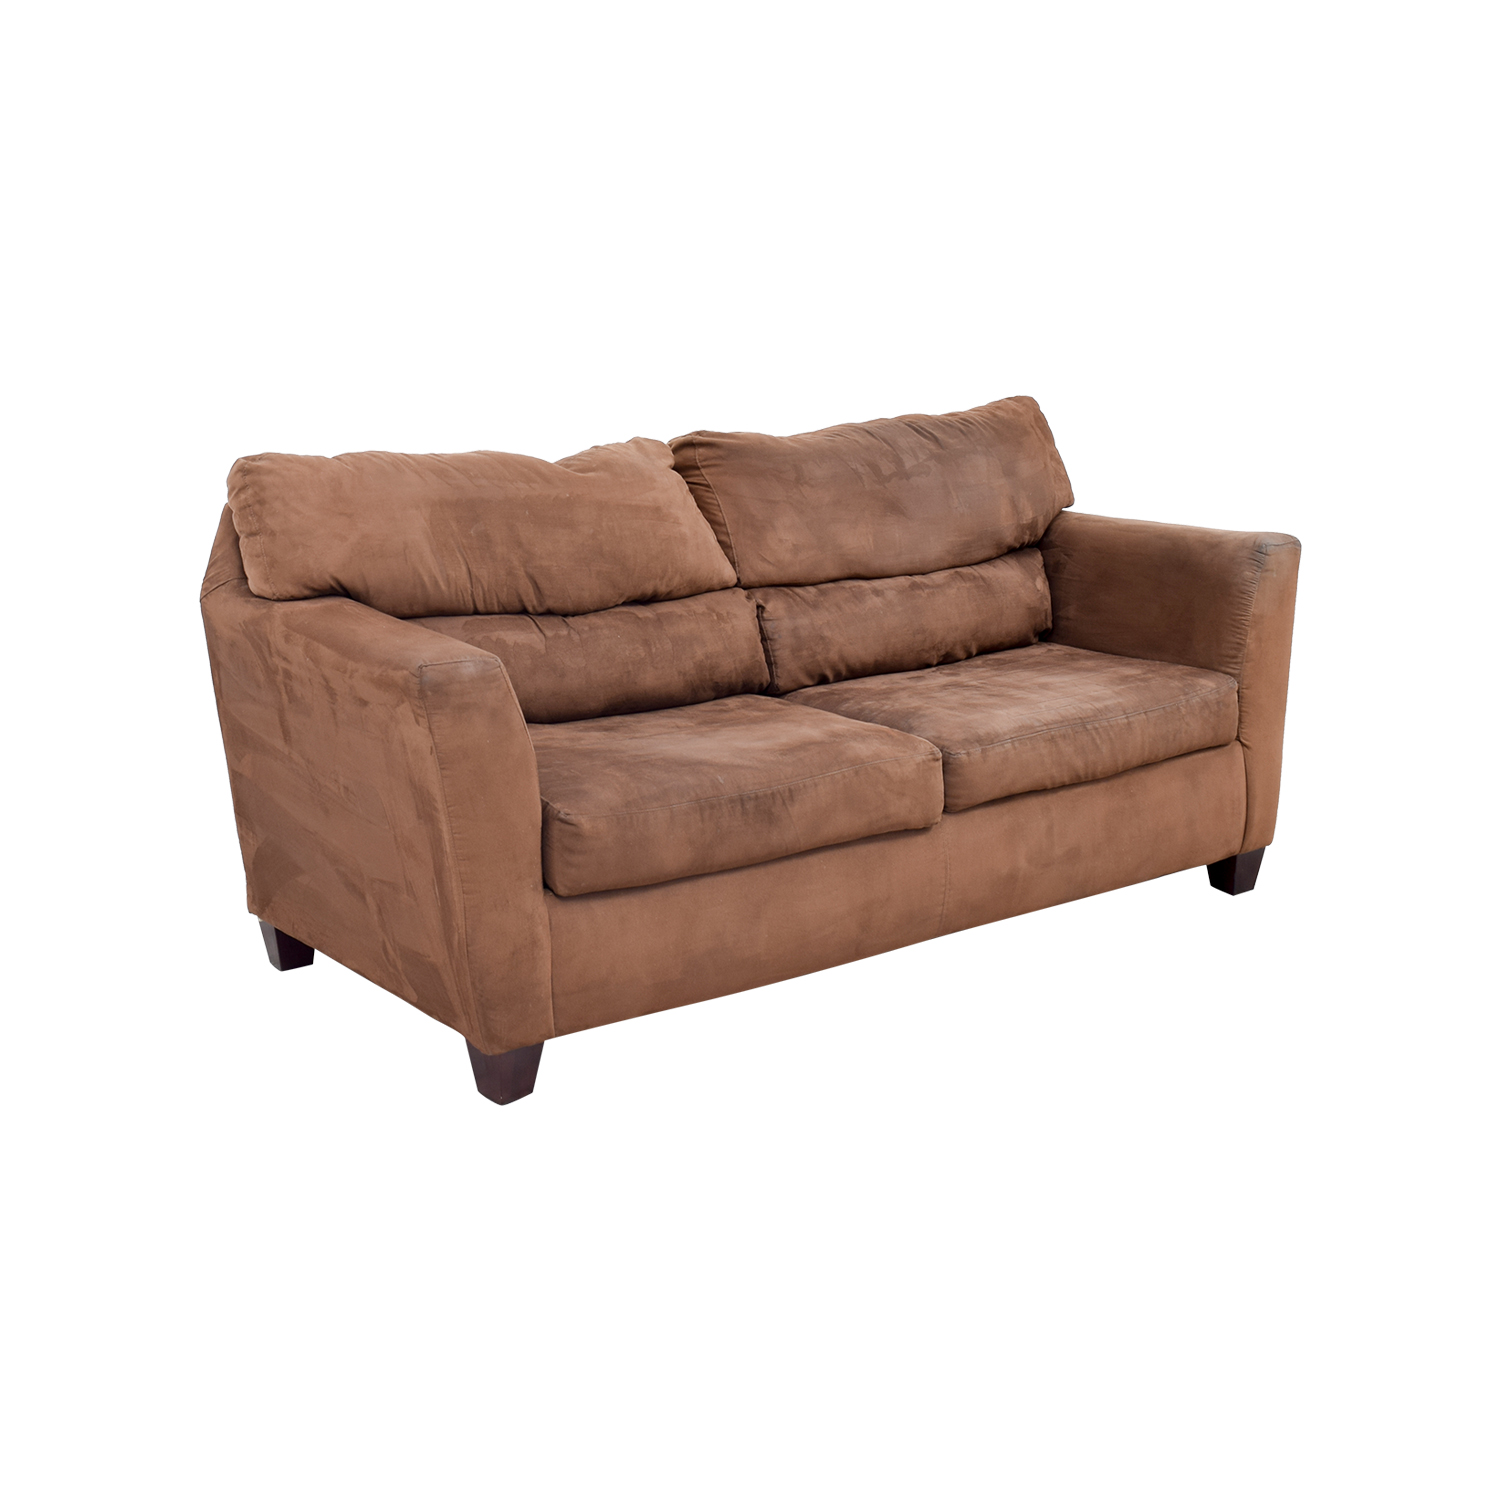 90 Off Bob S Furniture Bob S Furniture Brown Two